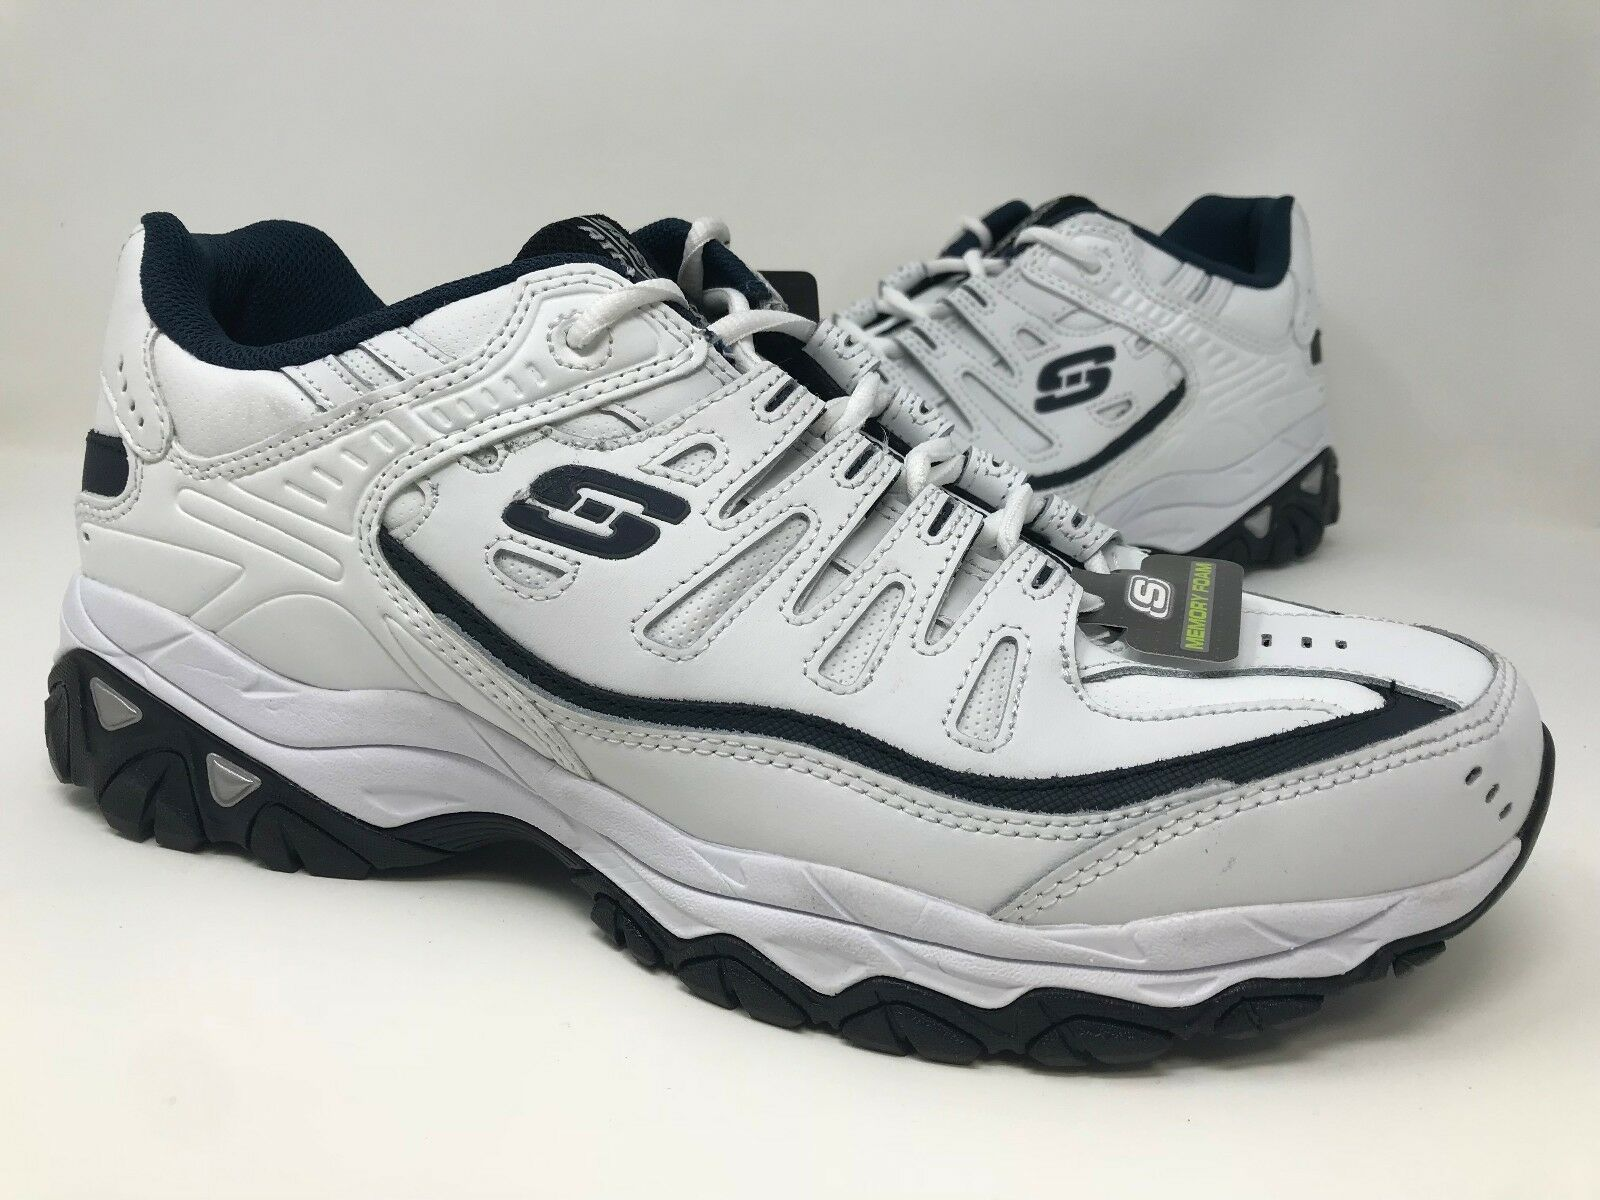 New! Men Skechers 50127 After Burn Reprint Trainers Price reduction WHT E27 Seasonal clearance sale